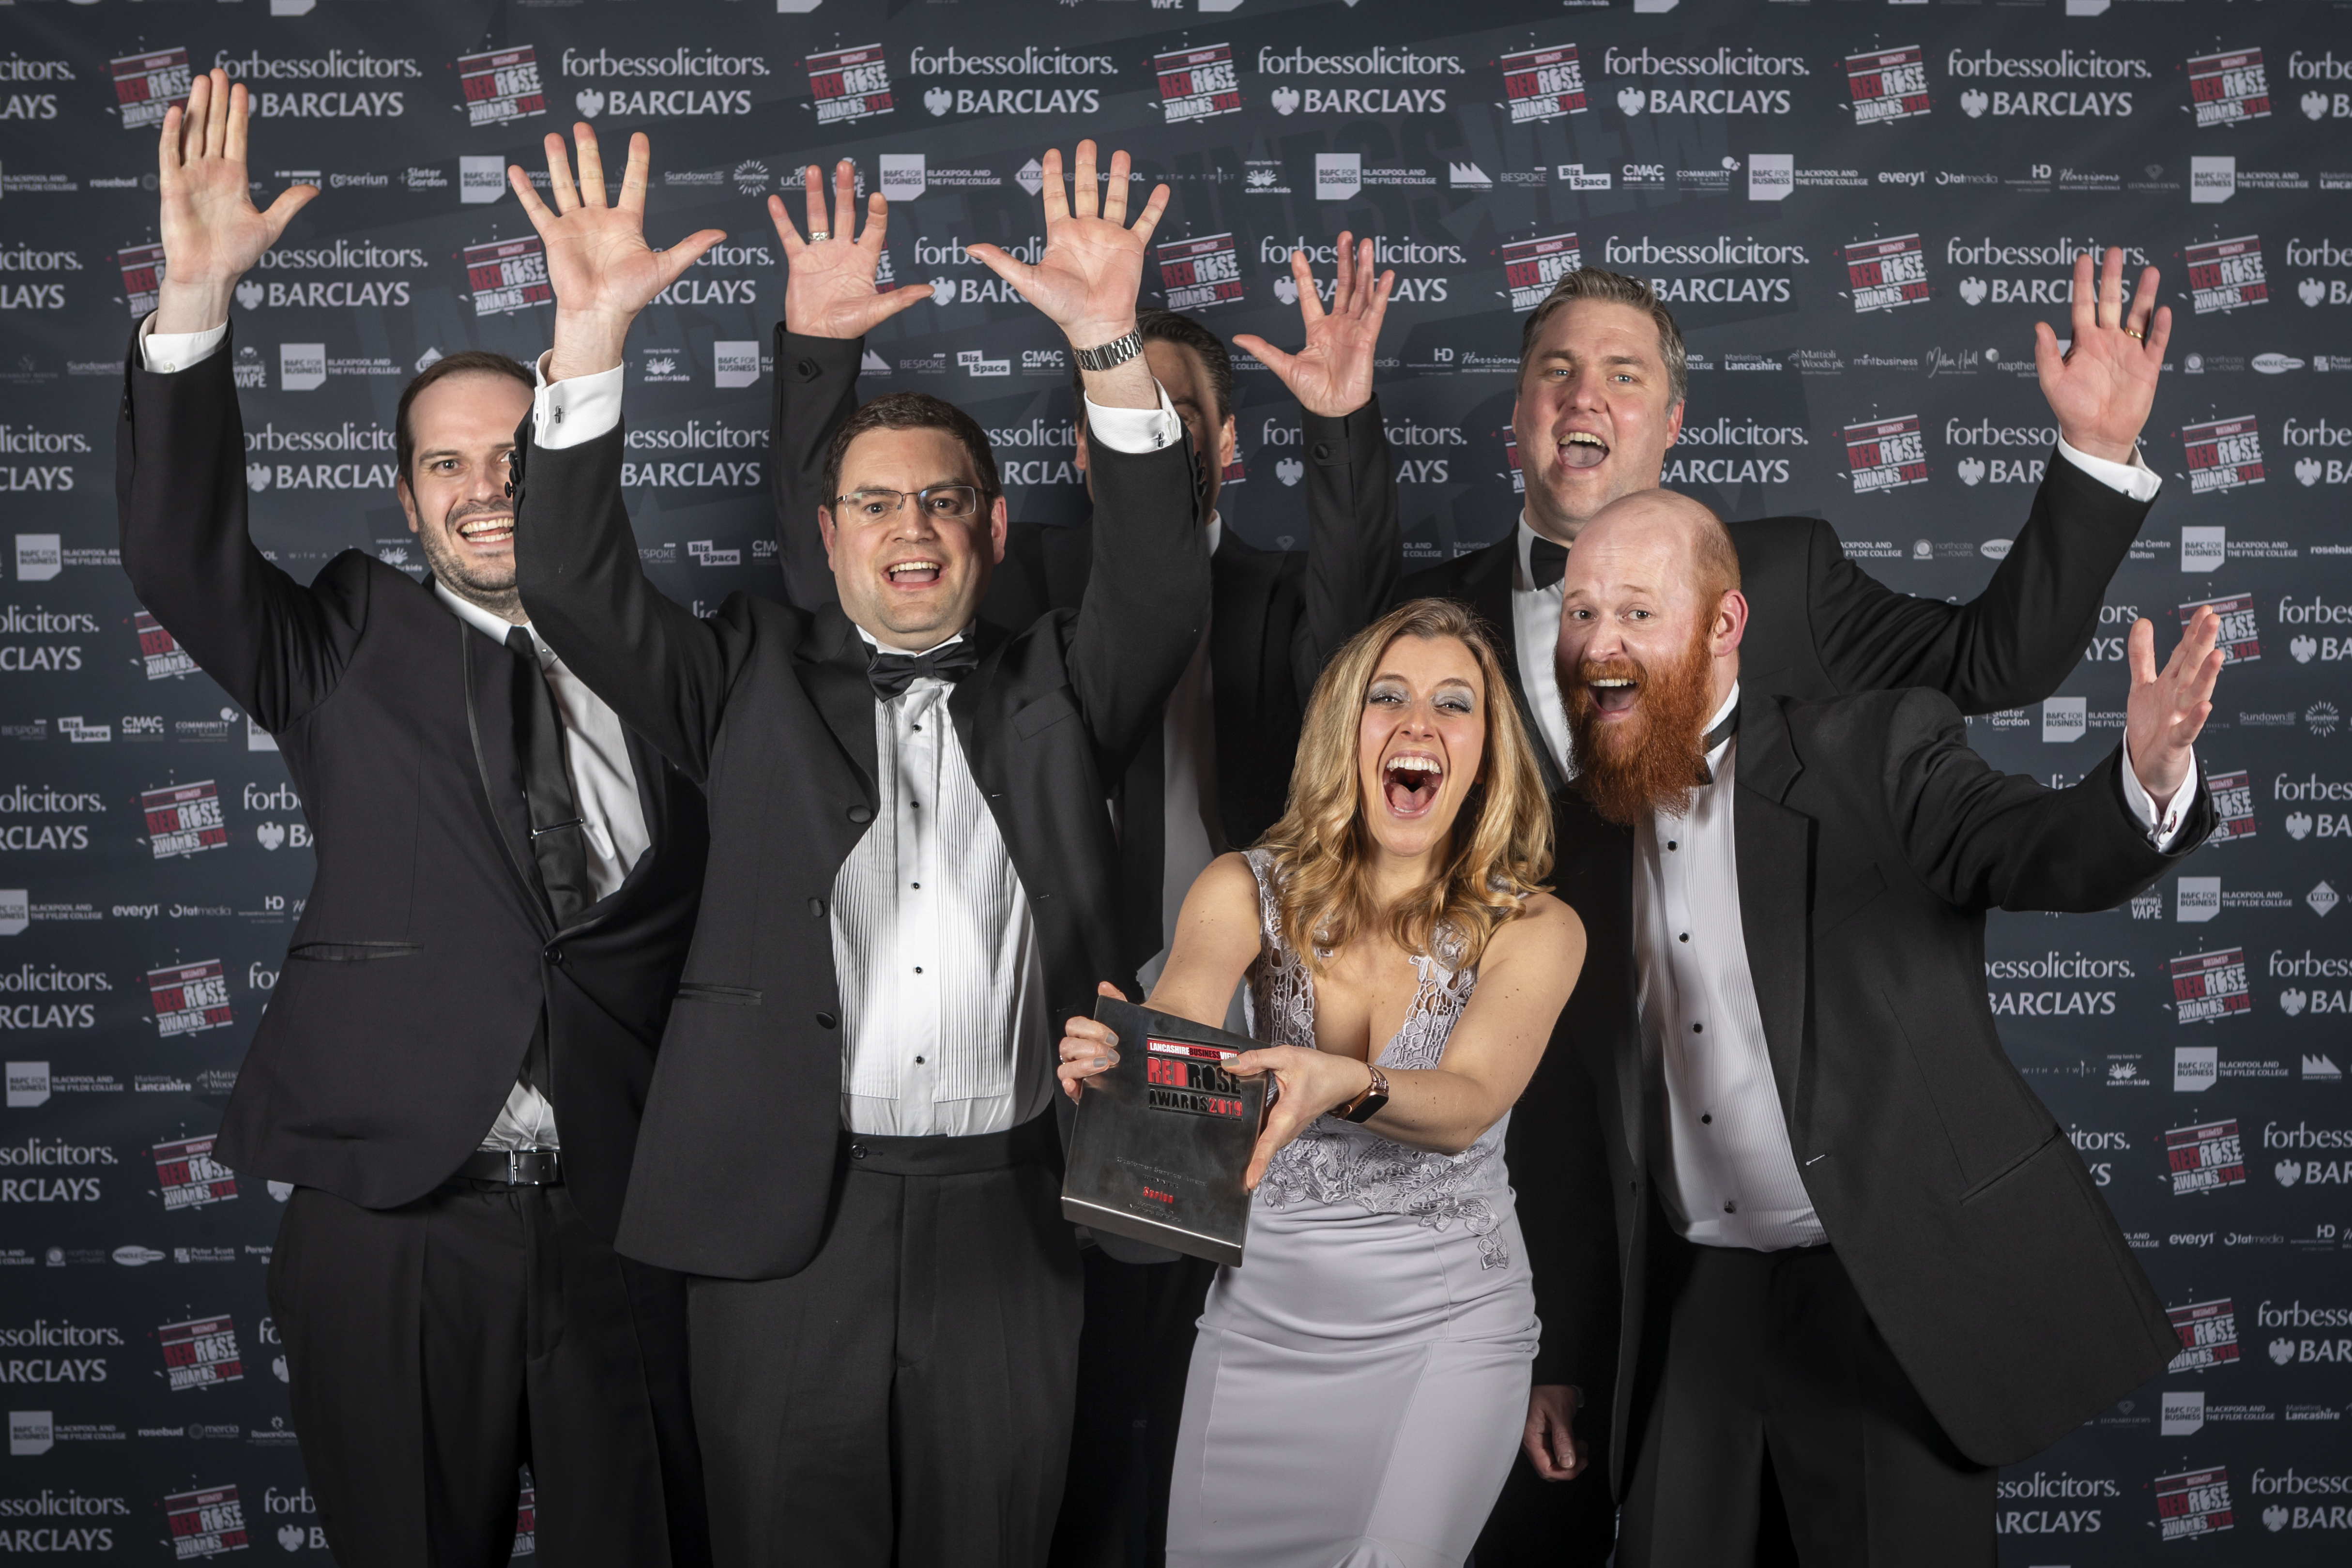 SERIUN CROWNED THE BEST CUSTOMER SERVICE BUSINESS AT RED ROSE AWARDS